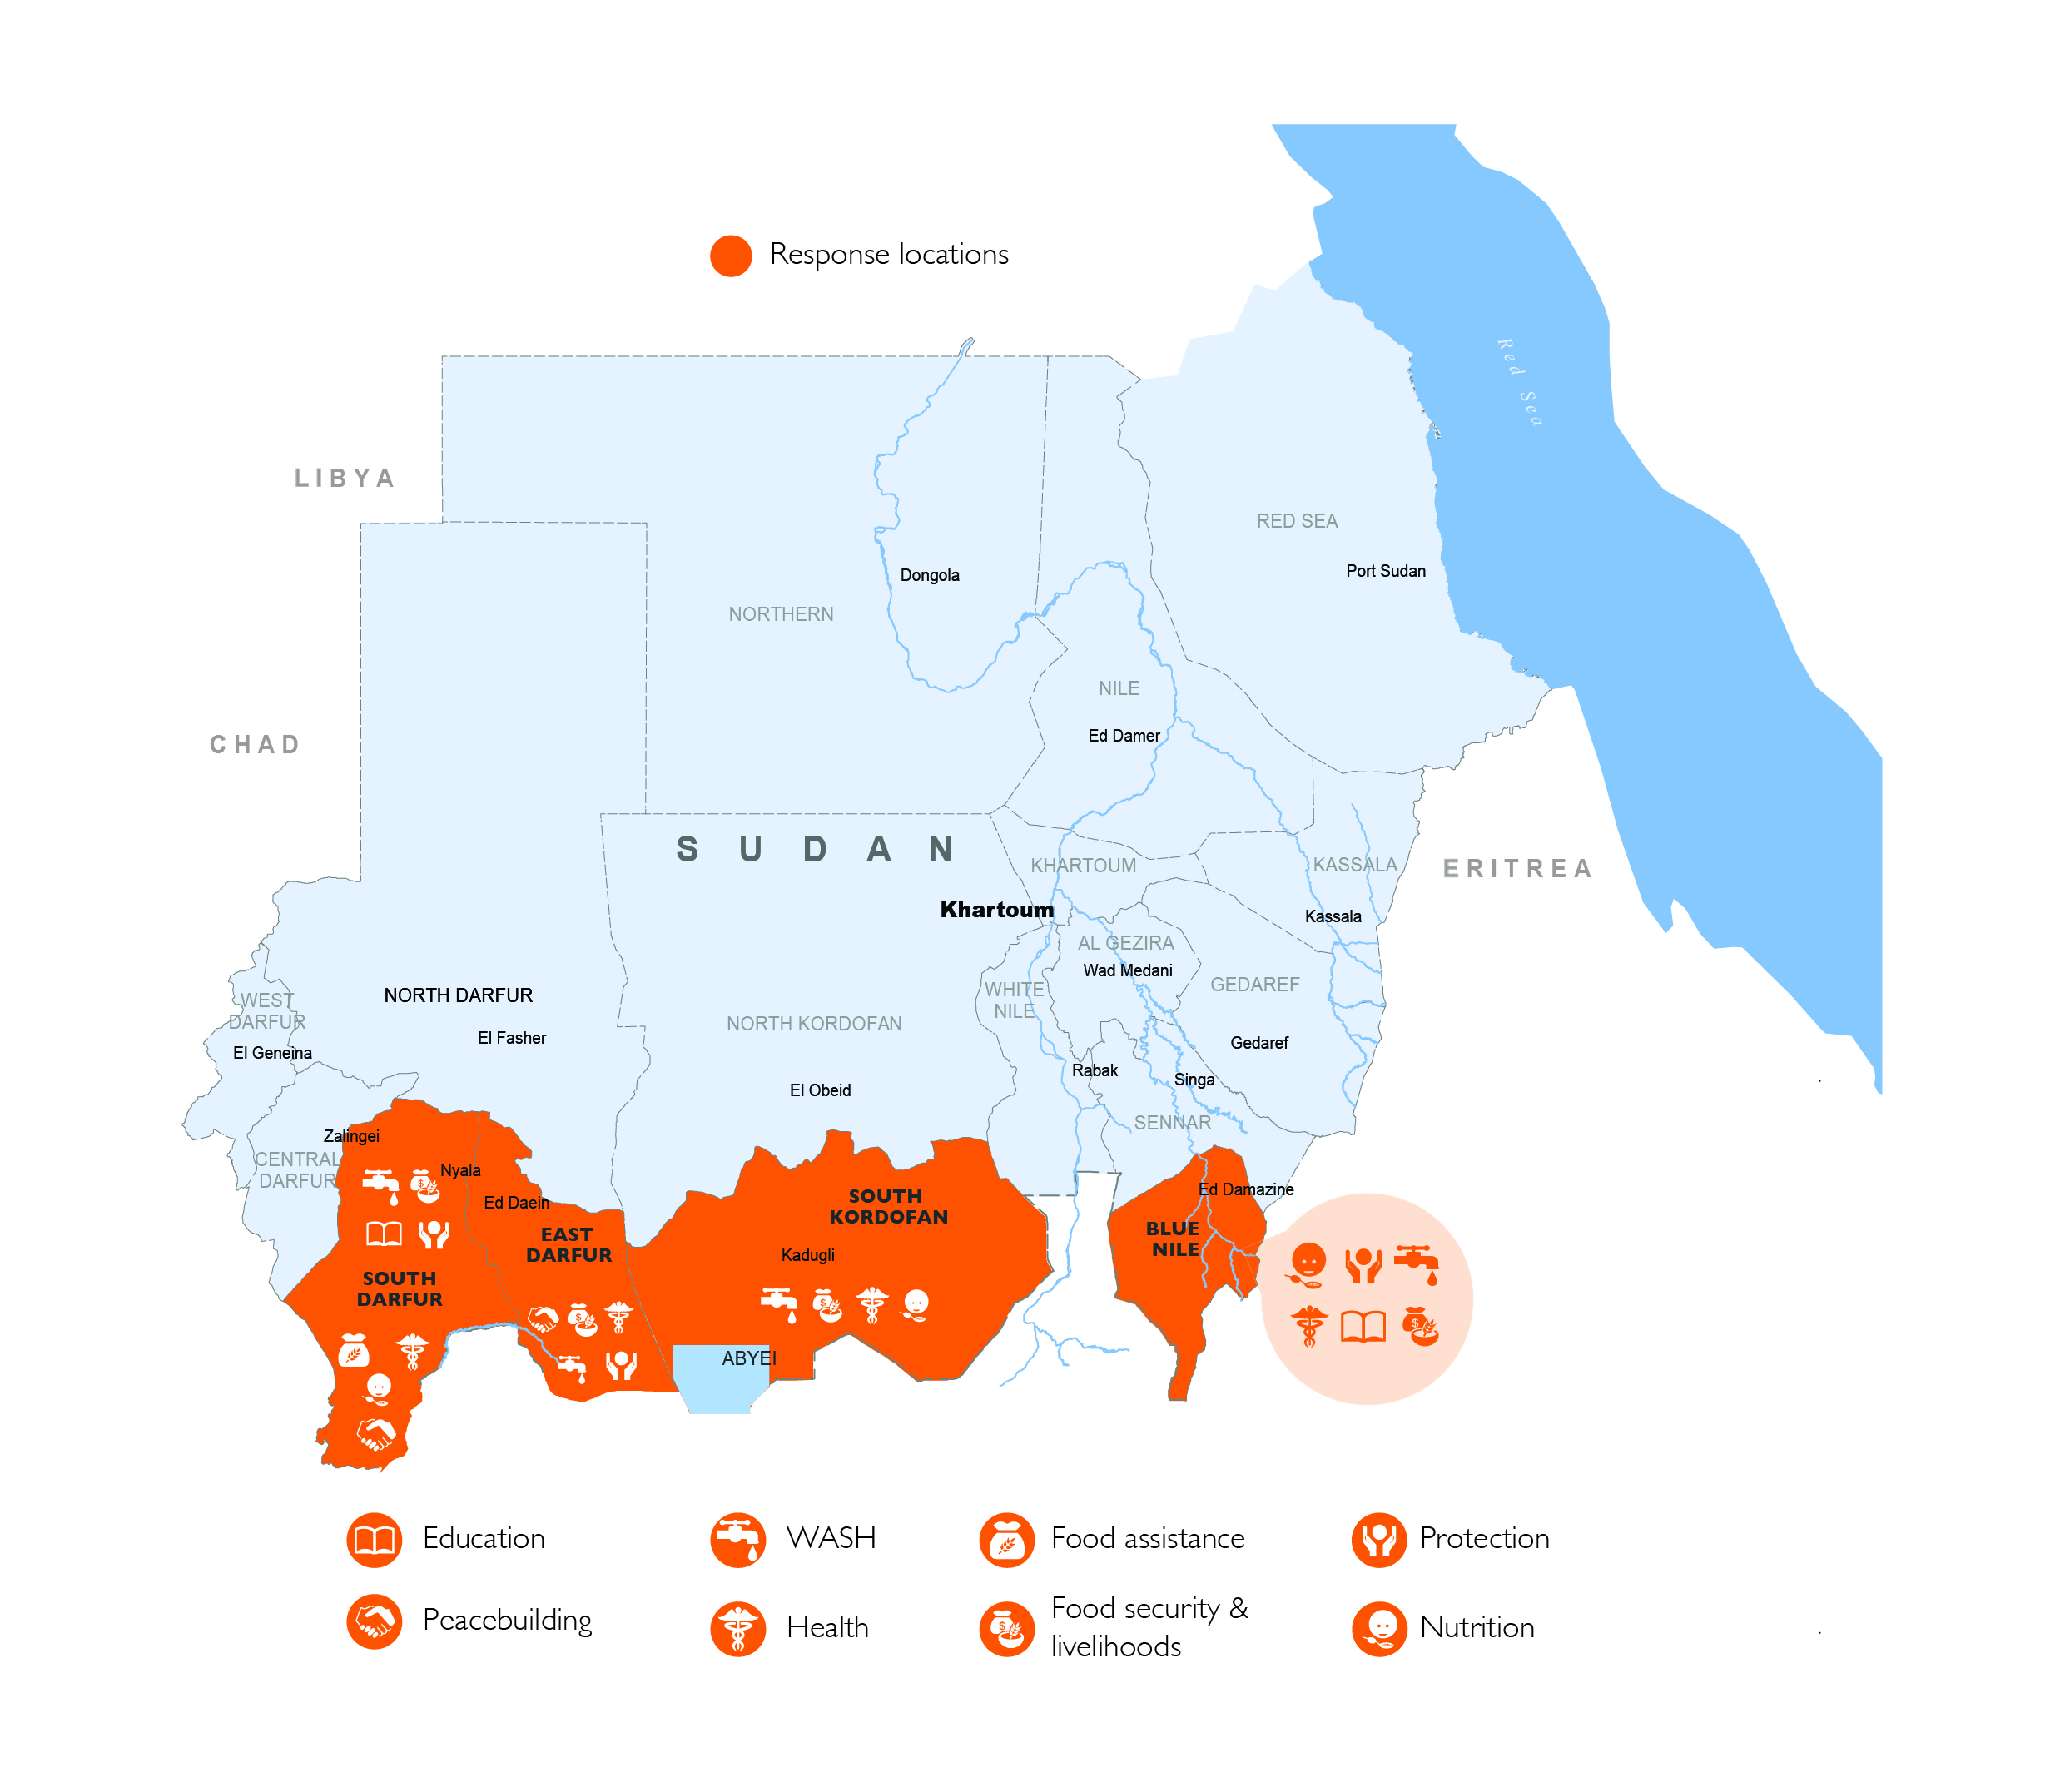 World Vision response locations map